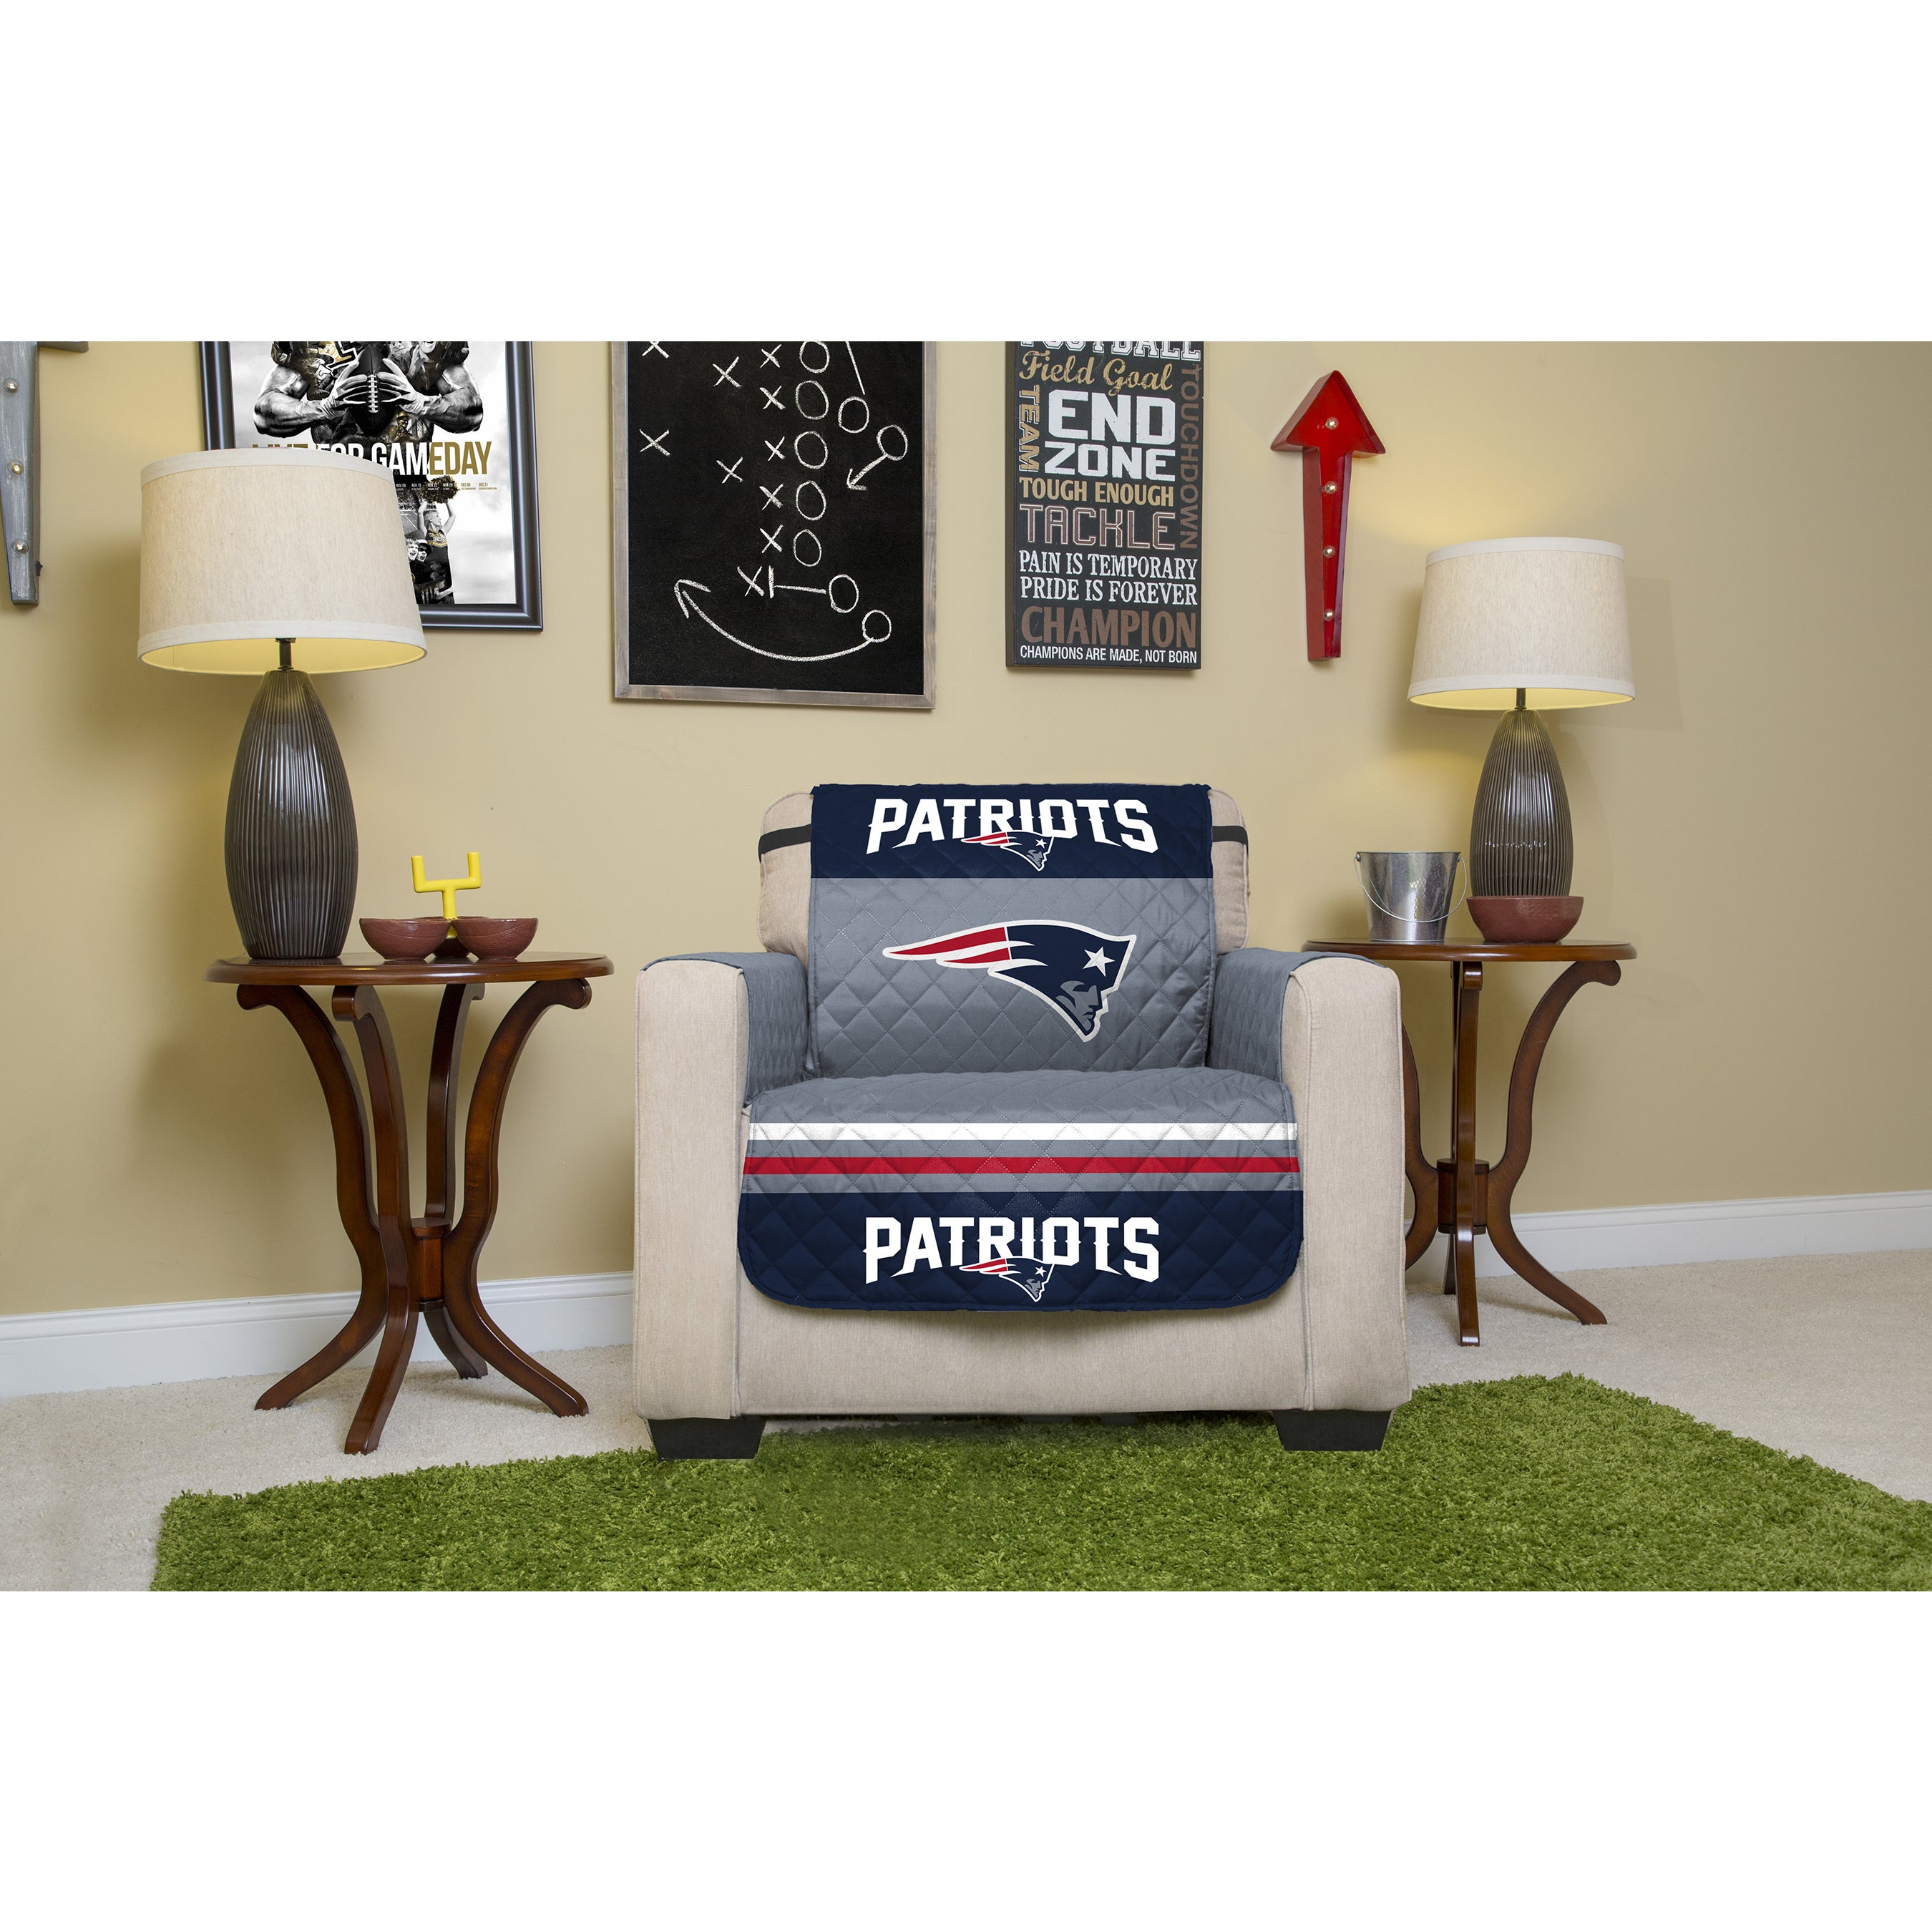 Official Nfl Licensed New England Patriots Chair Protector Free Shipping On Orders Over 45 12280438